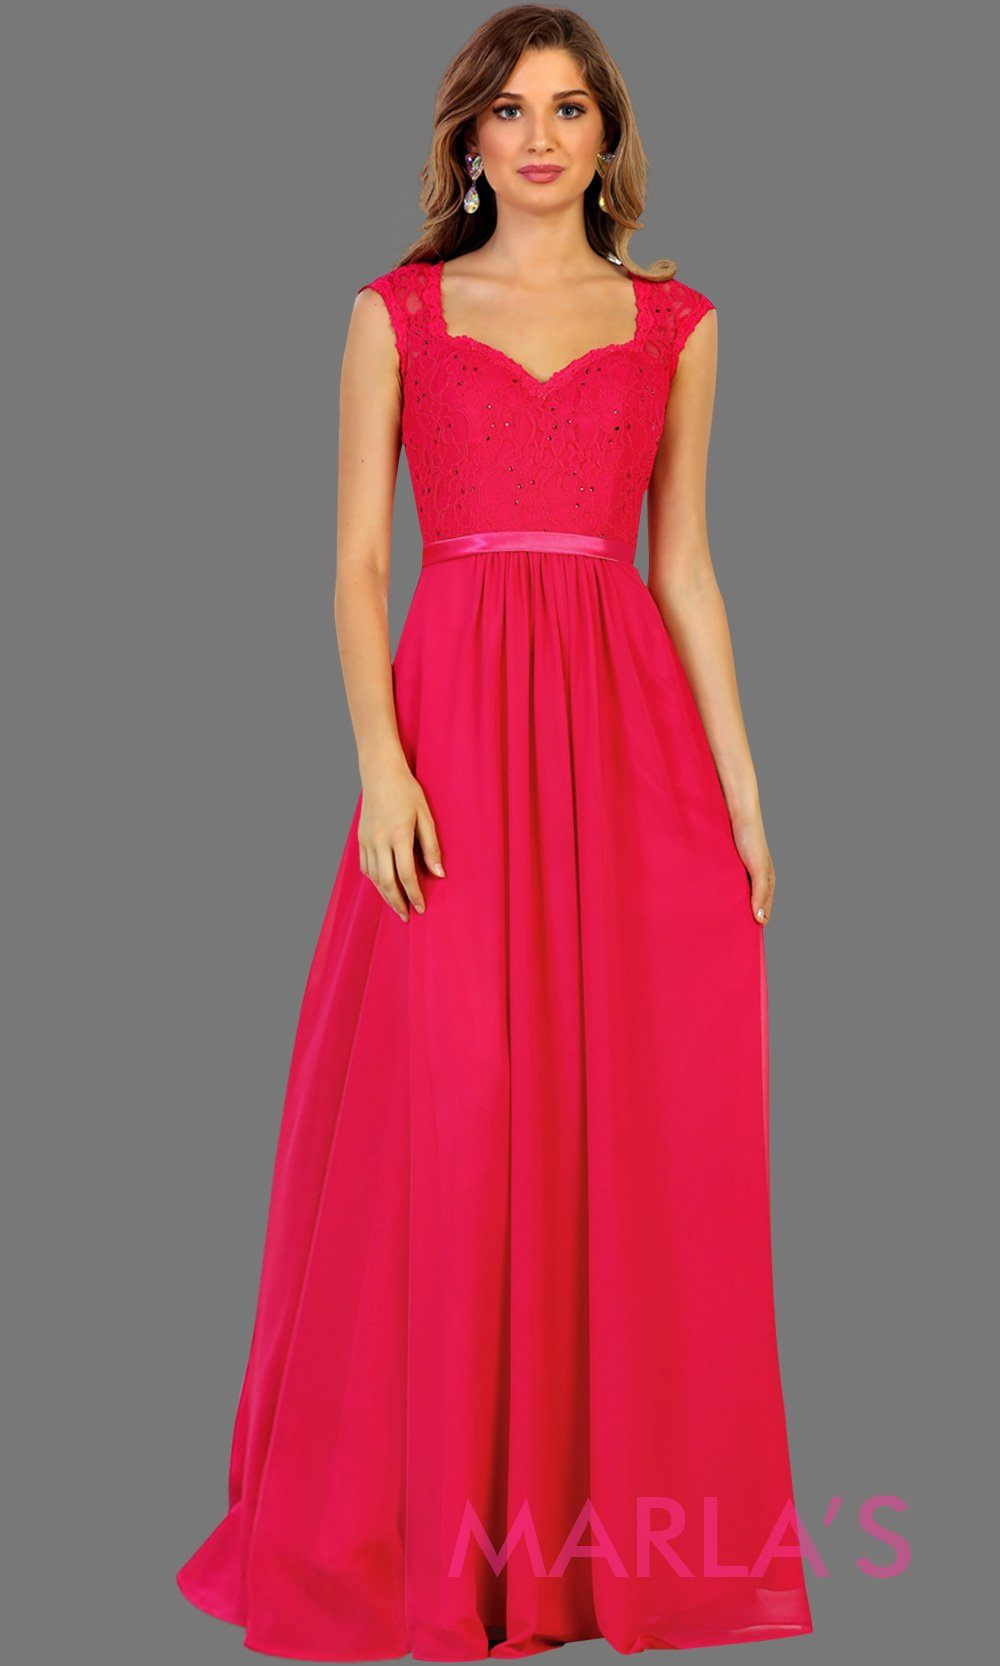 Long flowy hot pink dress with lace back and cap sleeve. It has a satin band. Perfect for fuchsia bridesmaids, pink prom, wedding guest dress, formal gown, destination wedding, long party dress, western dress, damas. Available in Plus Sizes.